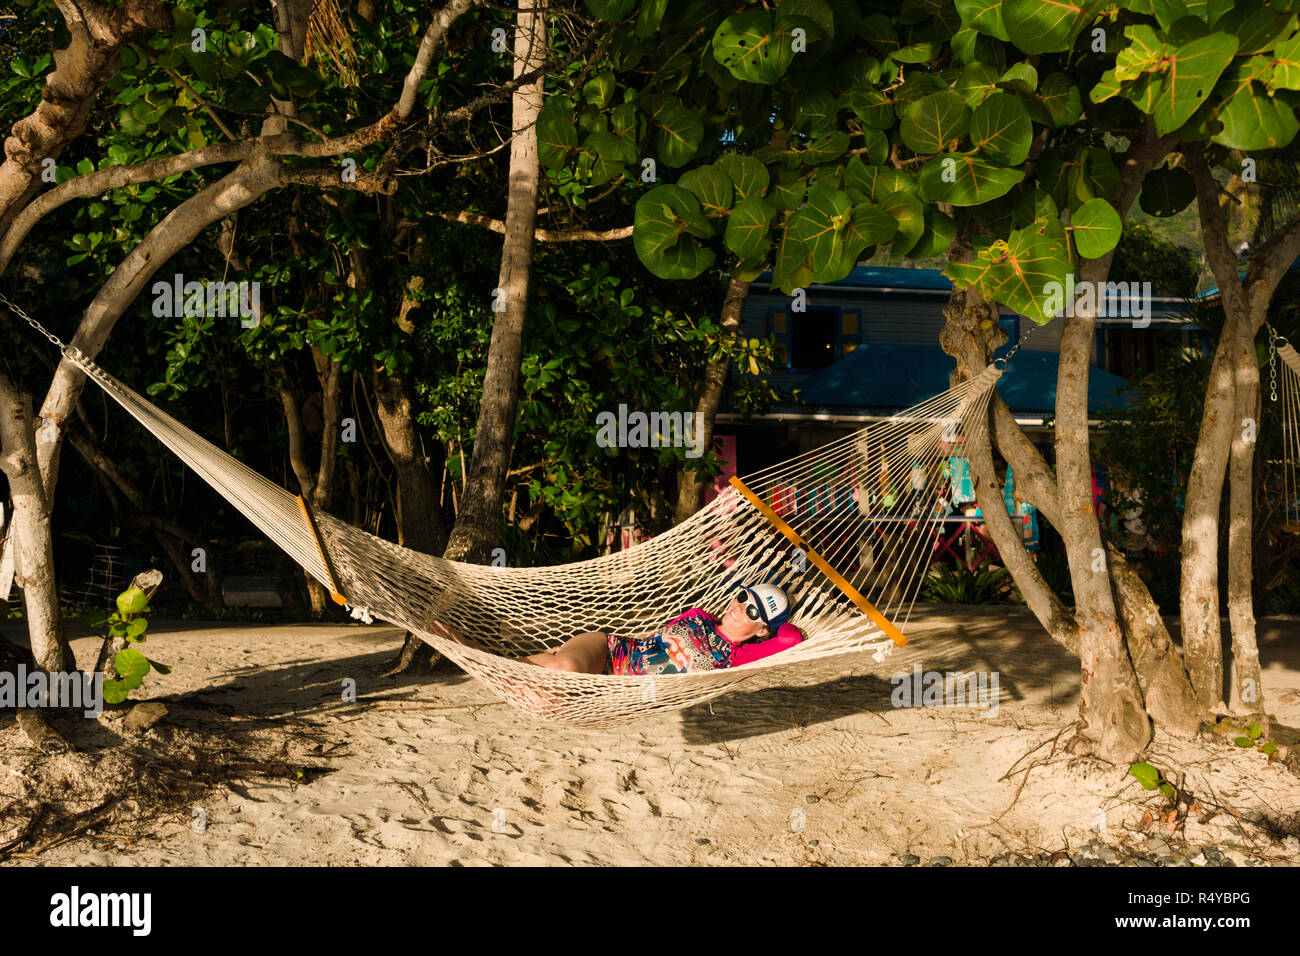 A woman relaxes in a hammock on Belle Vue village on Jost Van Dyke island in the British Virgin Islands bareboat yacht charter vacation. - Stock Image